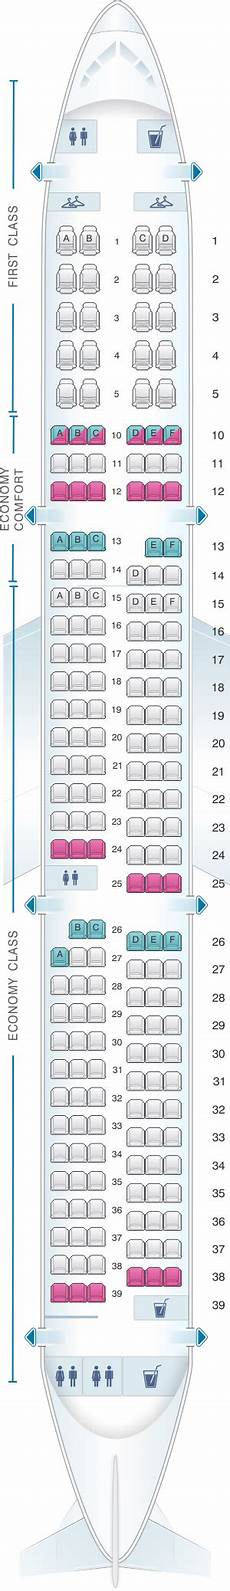 Delta Airlines Seating Chart Plan De Cabine Delta Air Lines Airbus A321 Seatmaestro Fr